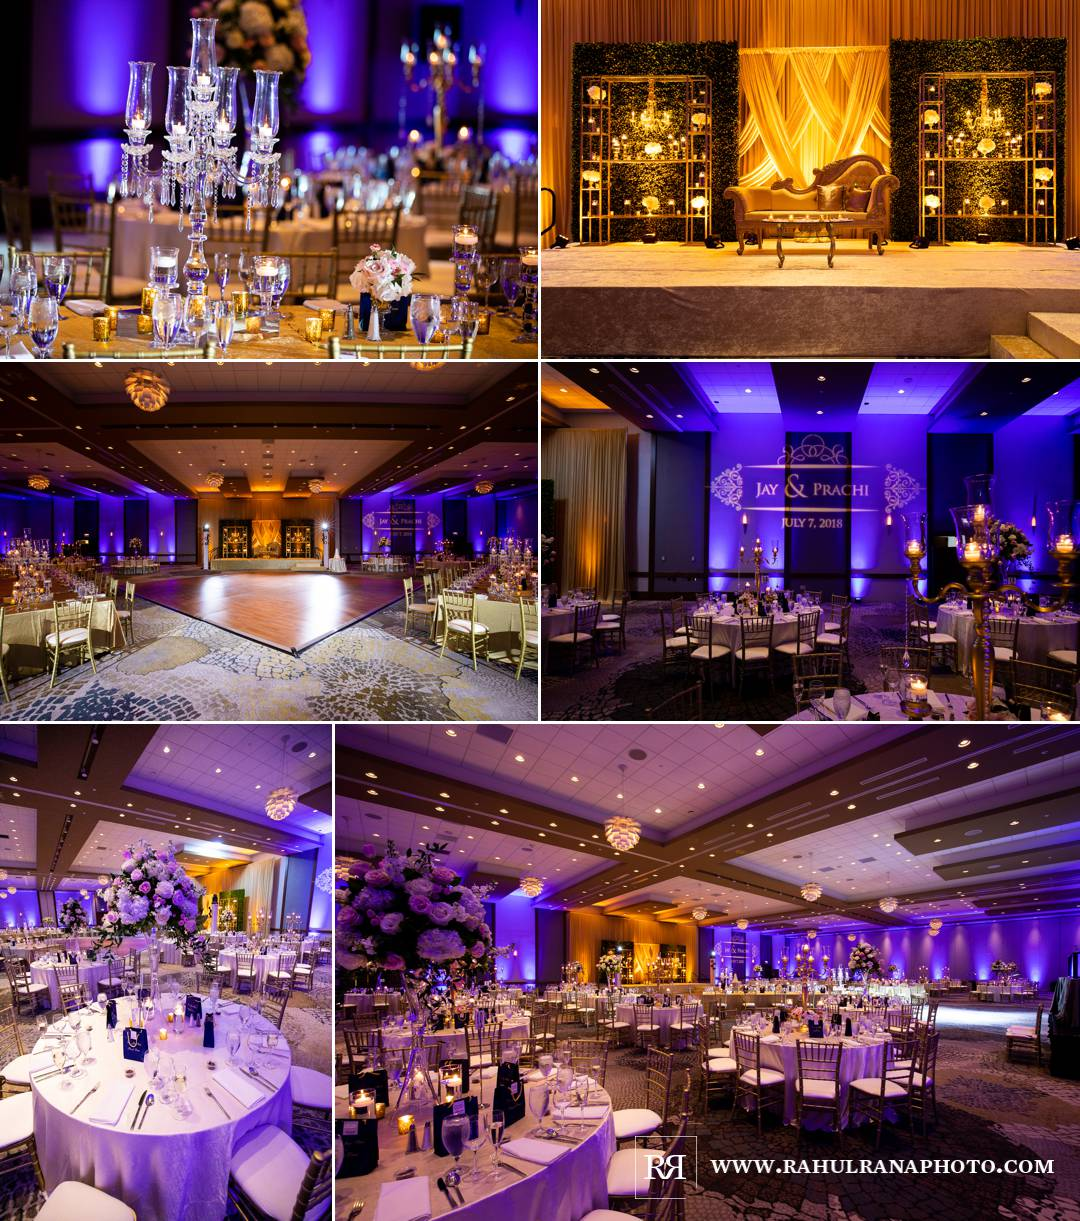 Westin North Shore - Wheeling Indian Wedding - Shaadi Creations Decor - Rahul Rana Photo